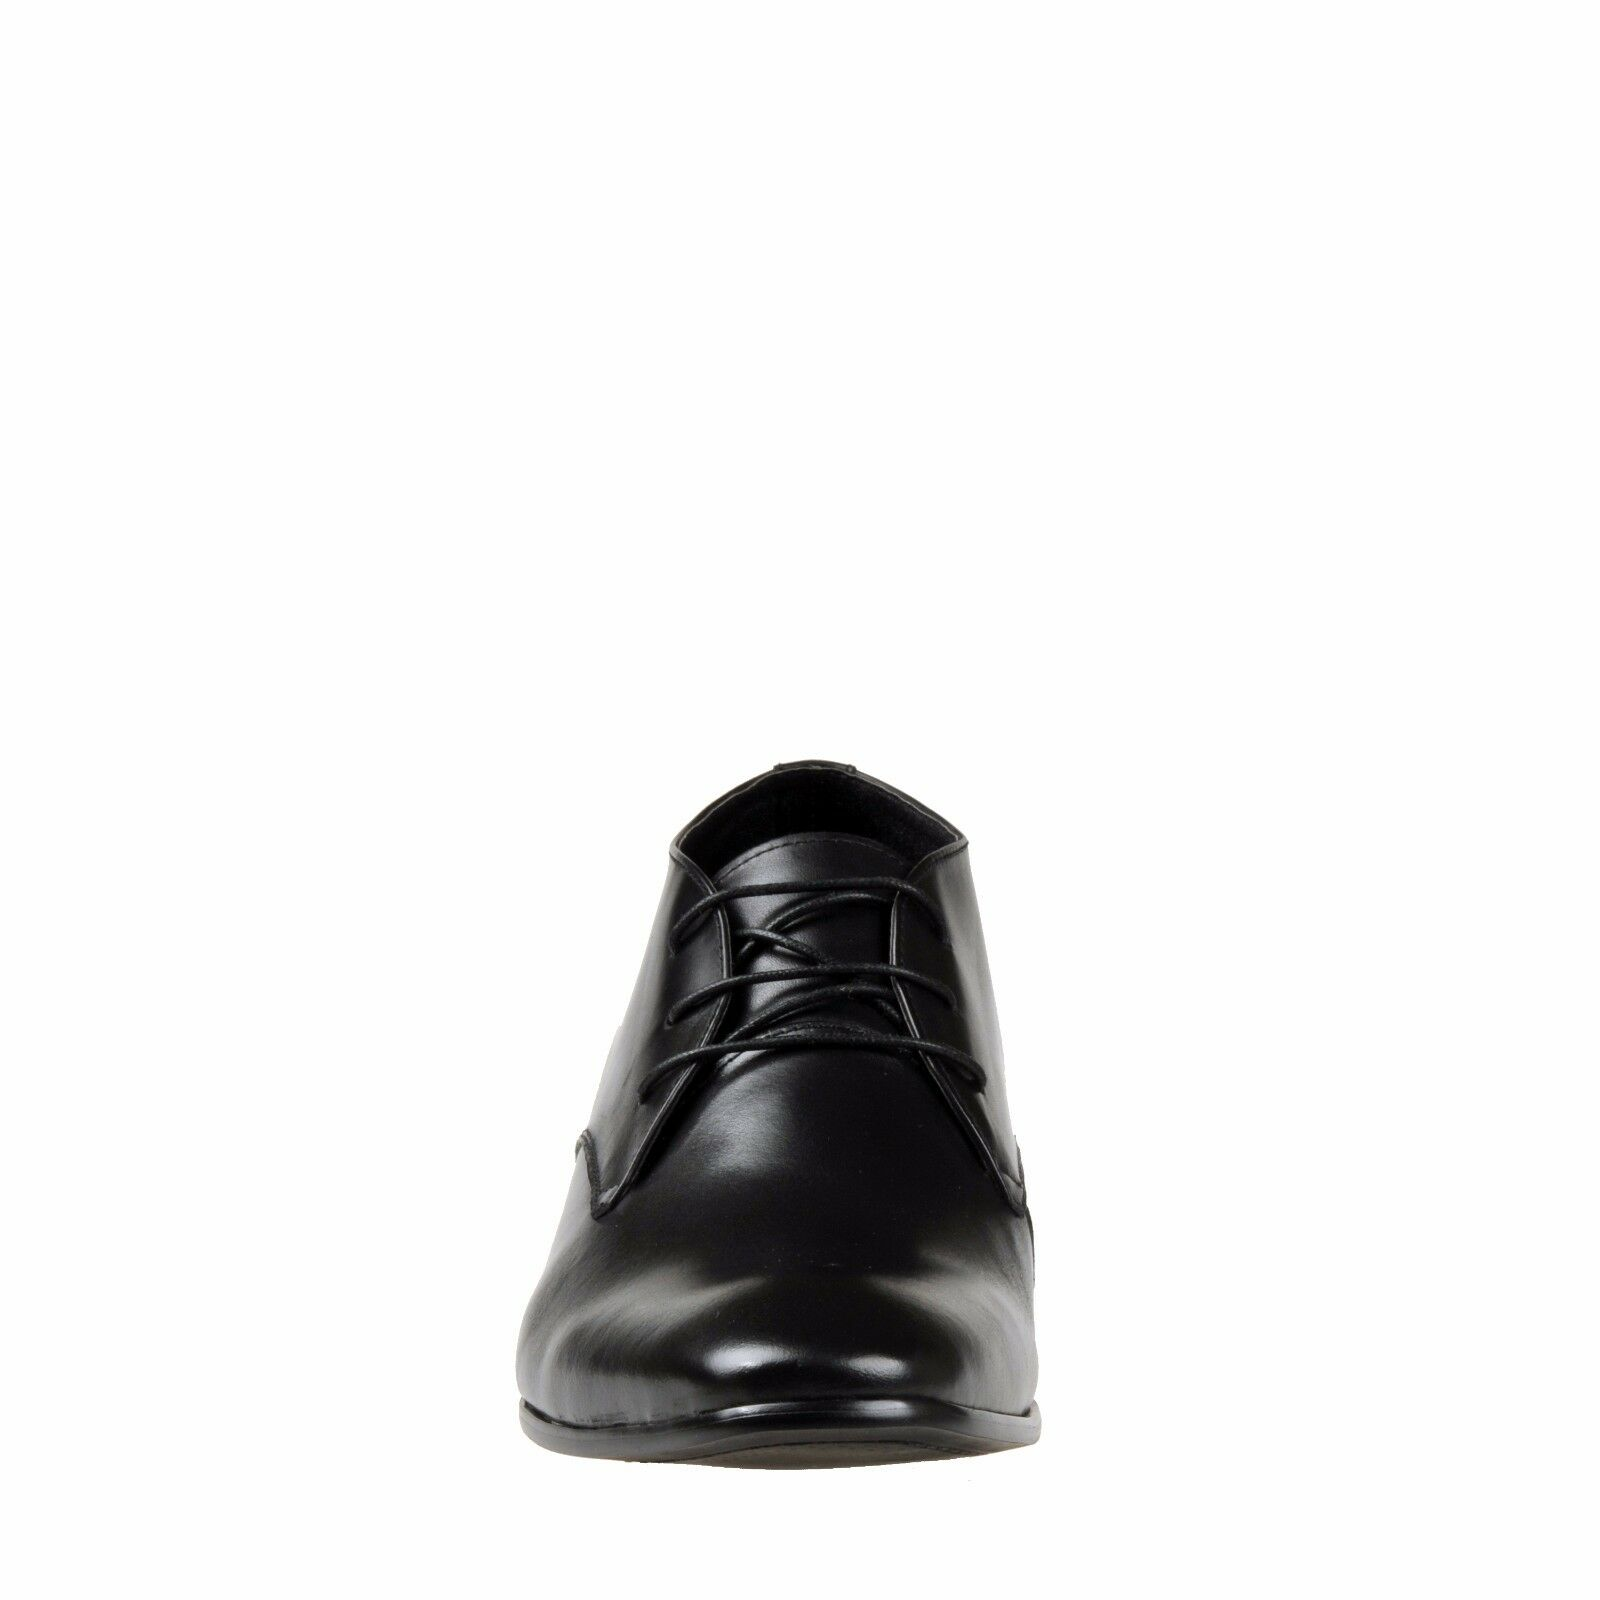 Height Increasing Shoes 3 3 3 inch taller taller shoes Elevator shoes Hosso London 0e7226